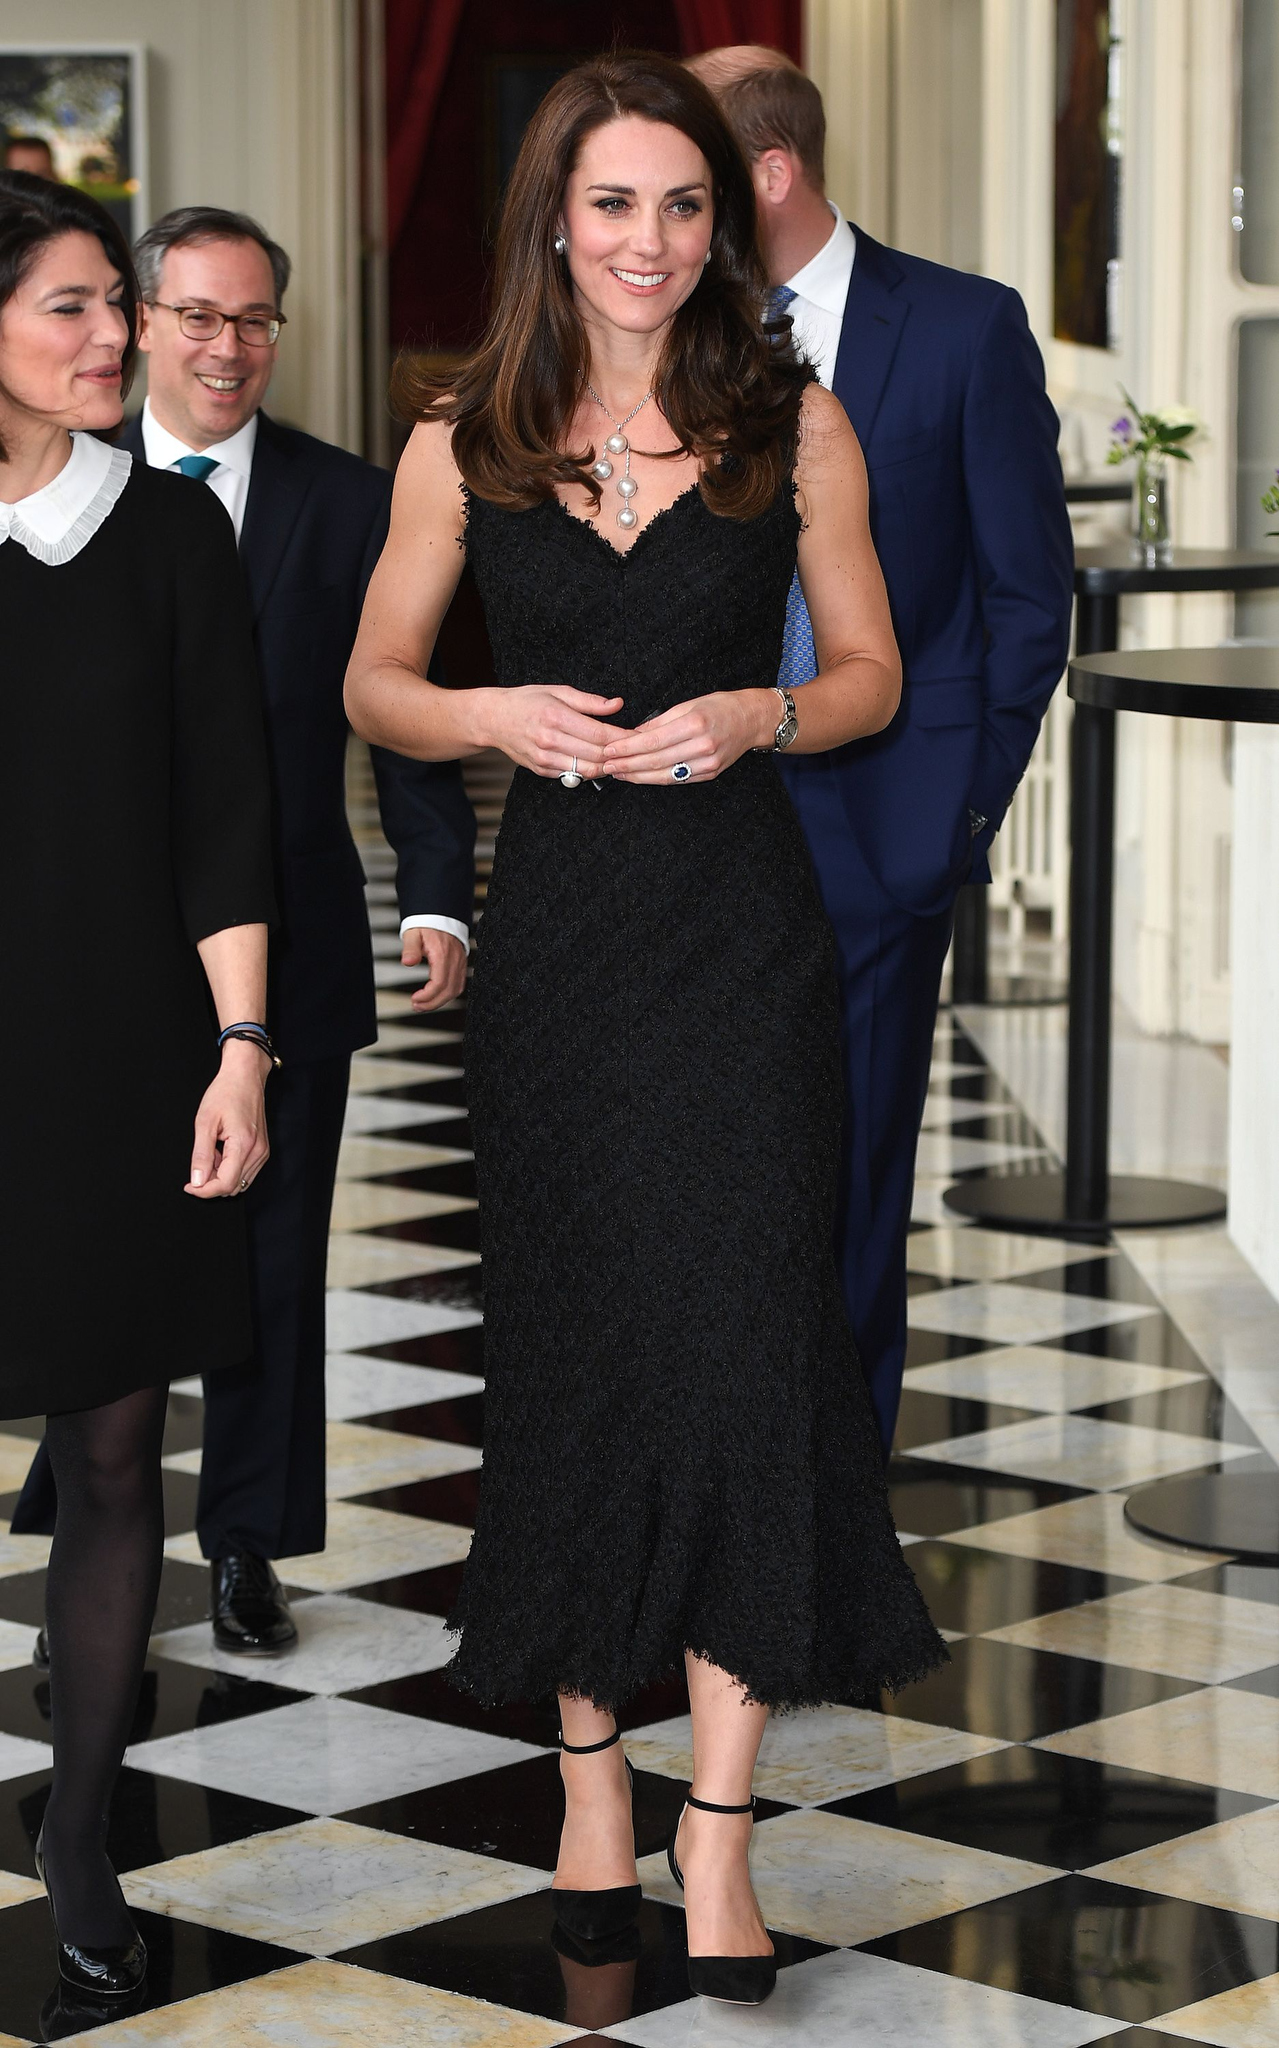 """28 Days UK OutMandatory Credit: Photo by REX/Shutterstock (8523329m)Catherine Duchess of CambridgePrince William and Catherine Duchess of Cambridge visit to Paris, France - 17 Mar 2017The Duke and Duchess of Cambridge attend a reception to mark the launch of """"Les Voisins"""" hosted by the British Ambassador at the British Embassy"""